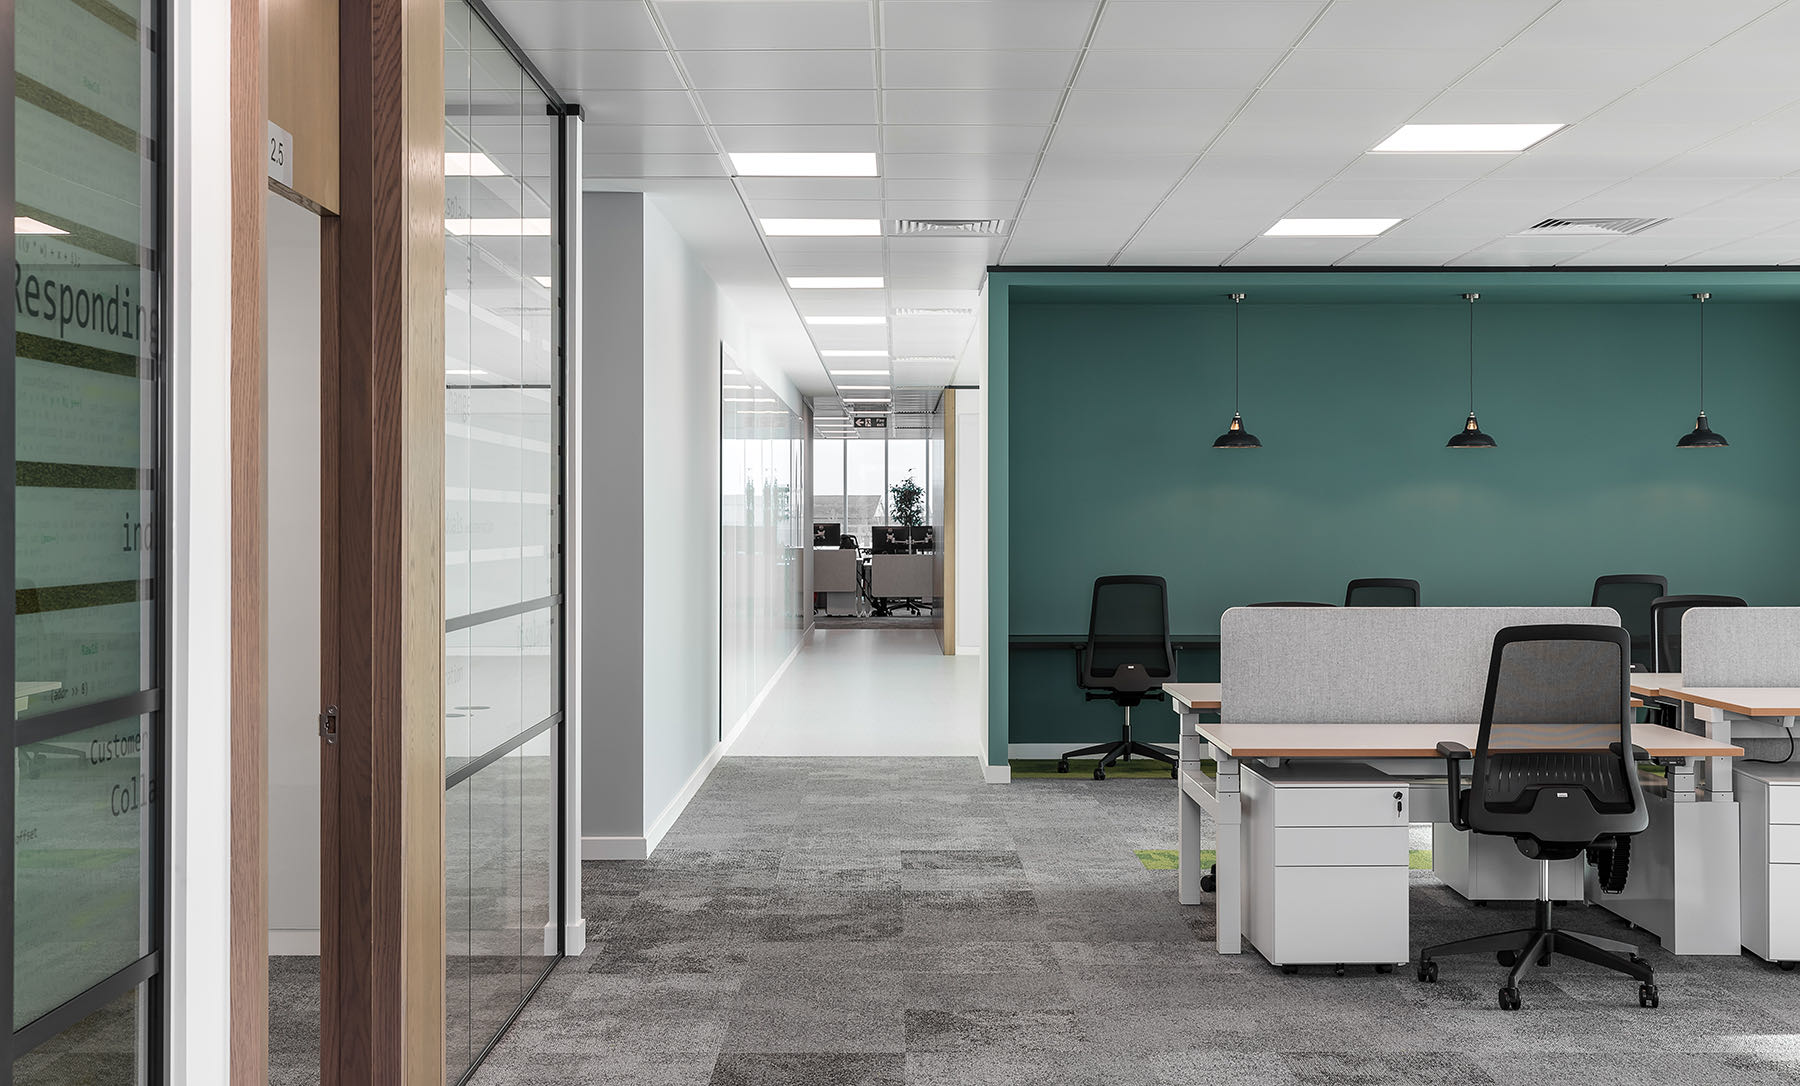 A Look Inside DisplayLink's New Cambridge Office